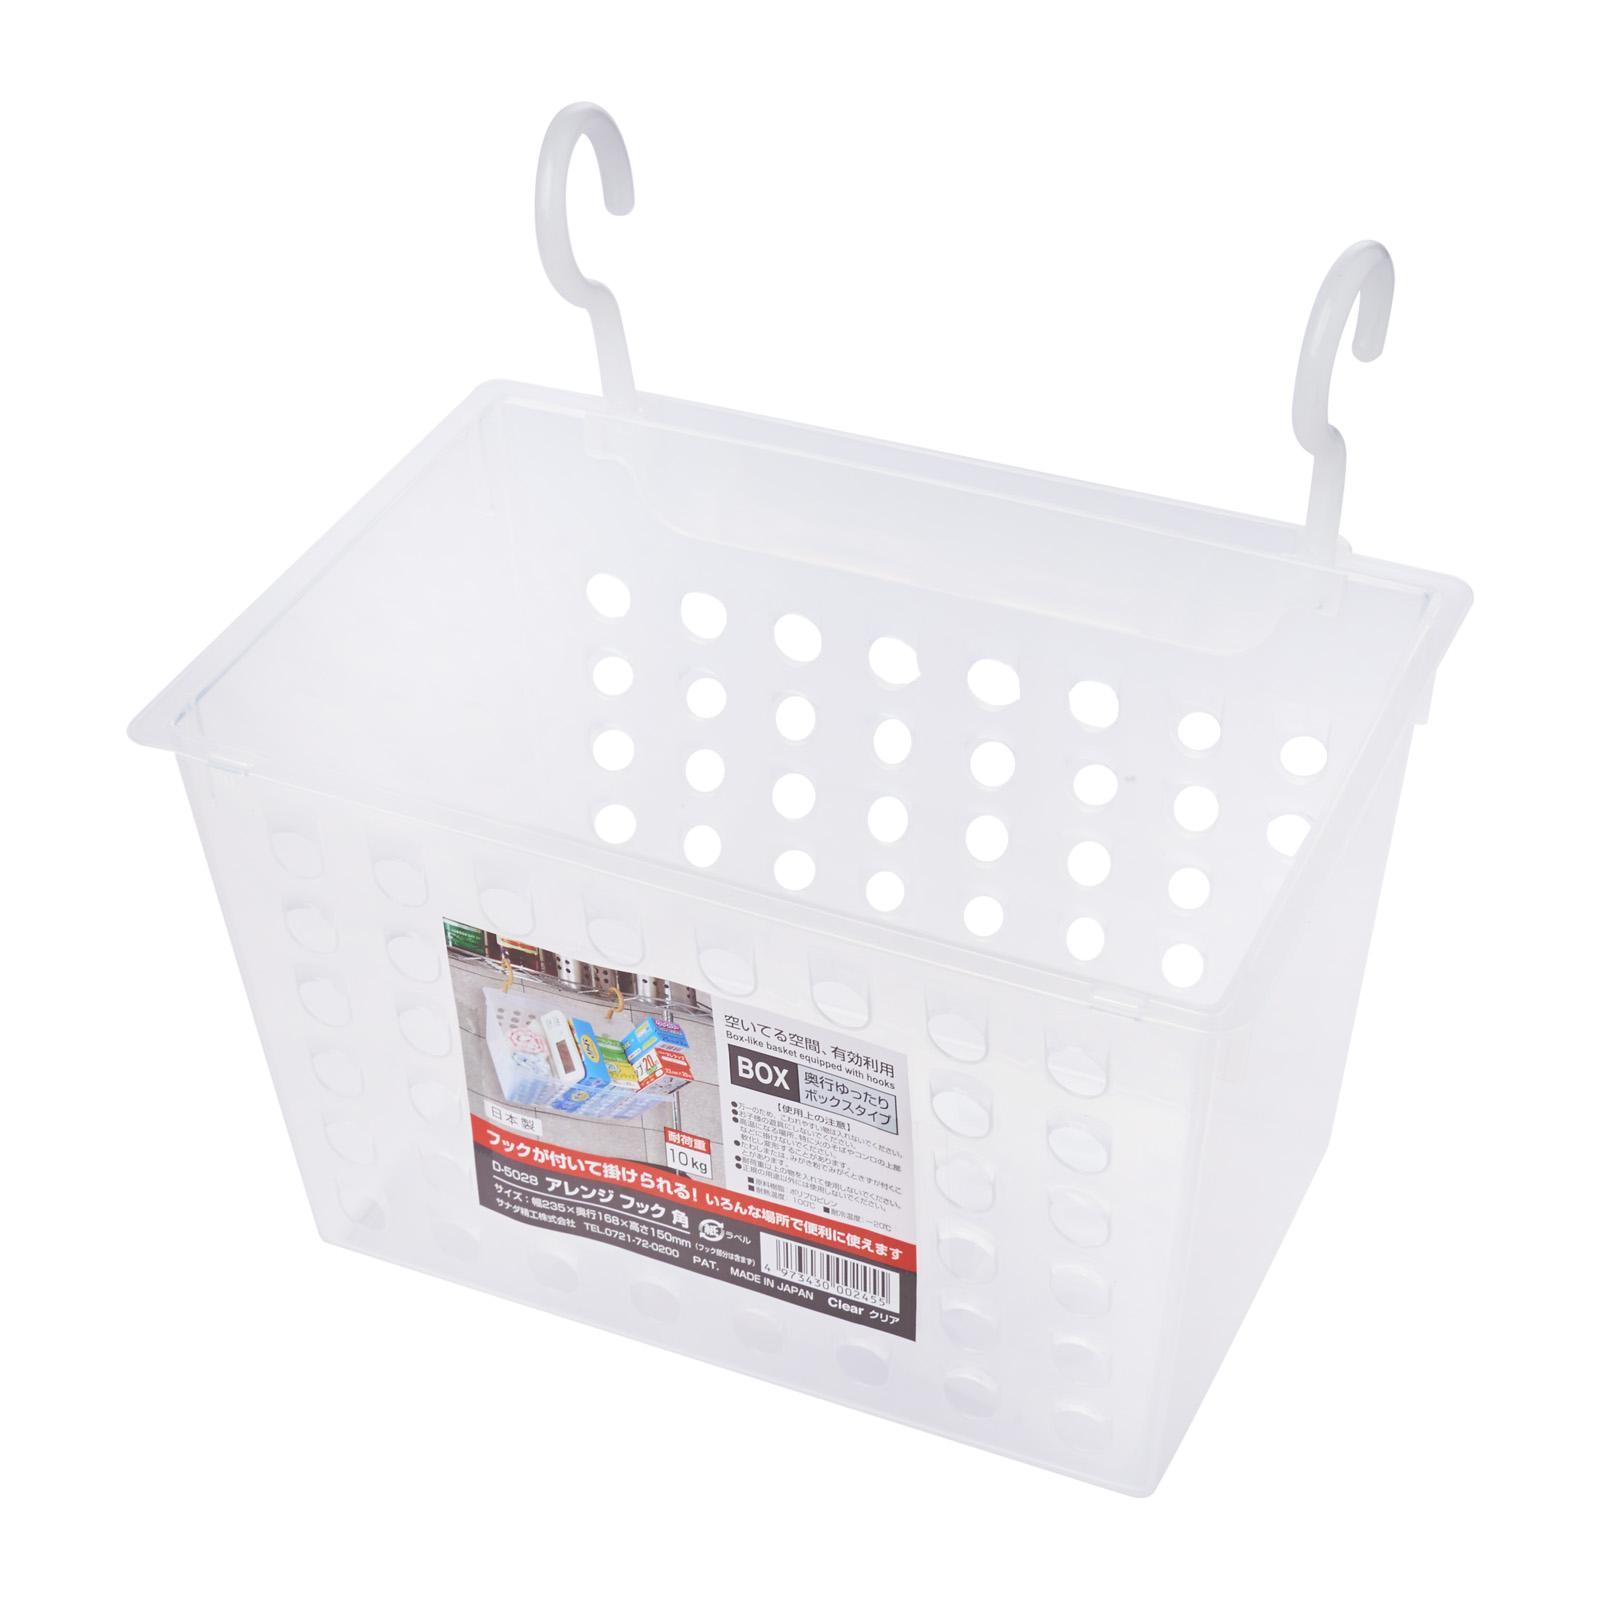 Poo Lee Box-Like Basket Equipped With Hooks (Clear)